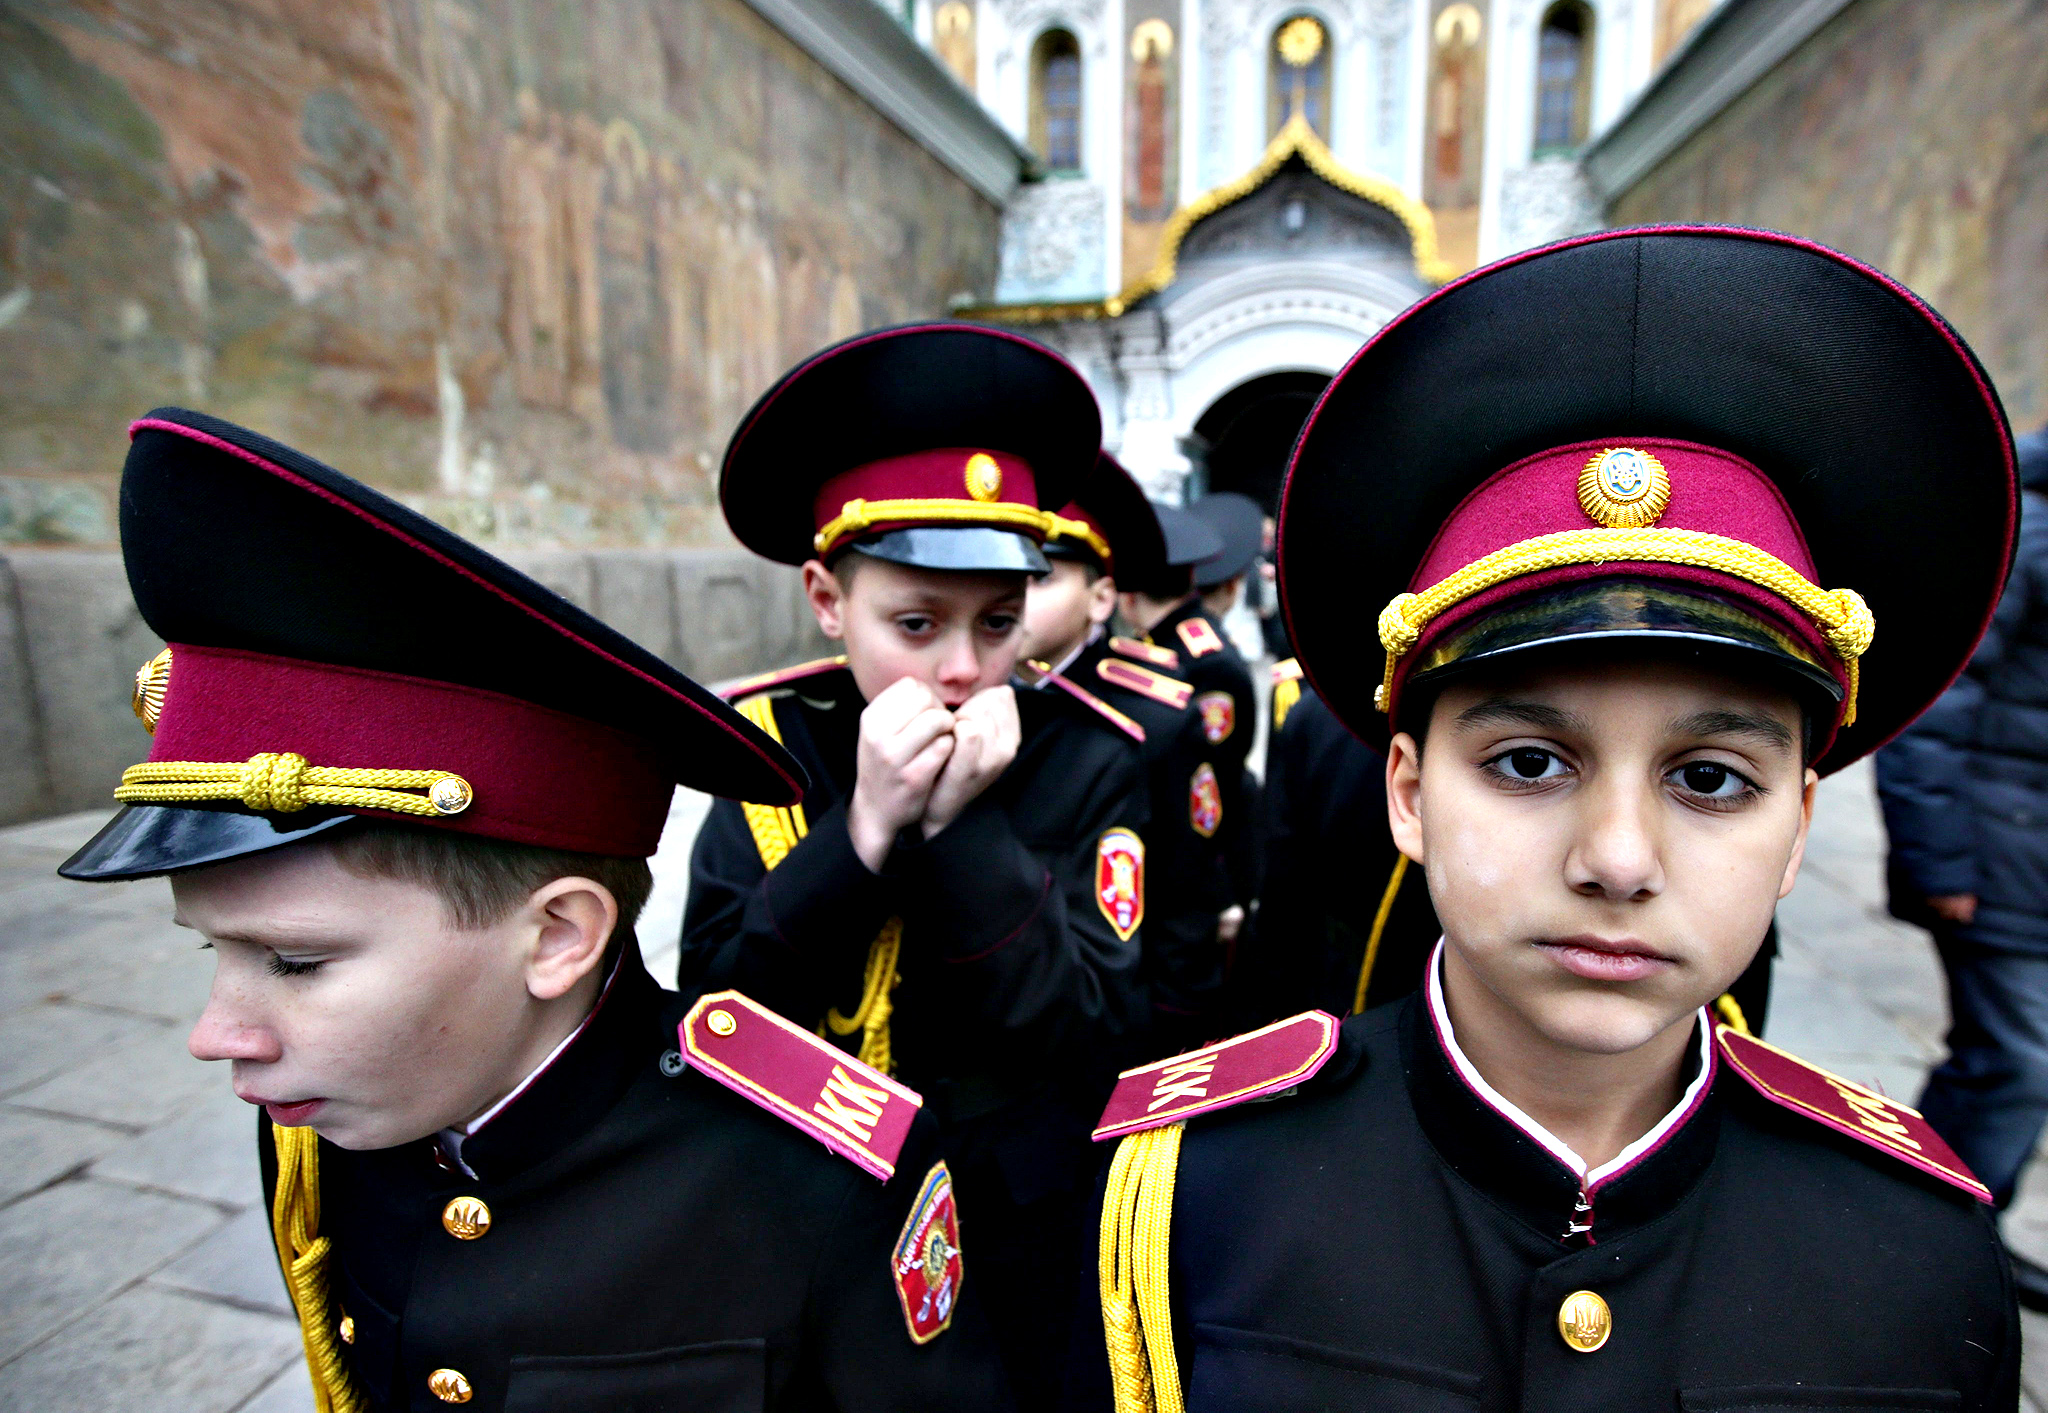 A young Ukrainian cadet warms his hands, after an oath-taking ceremony and a prayer service at Kiev Pechersk Lavra monastery in Kiev, Ukraine, 14  November 2014. About 100 young Ukrainian cadets took part in an oath-taking ceremony, including 10 cadets from the ATO area, local media report.